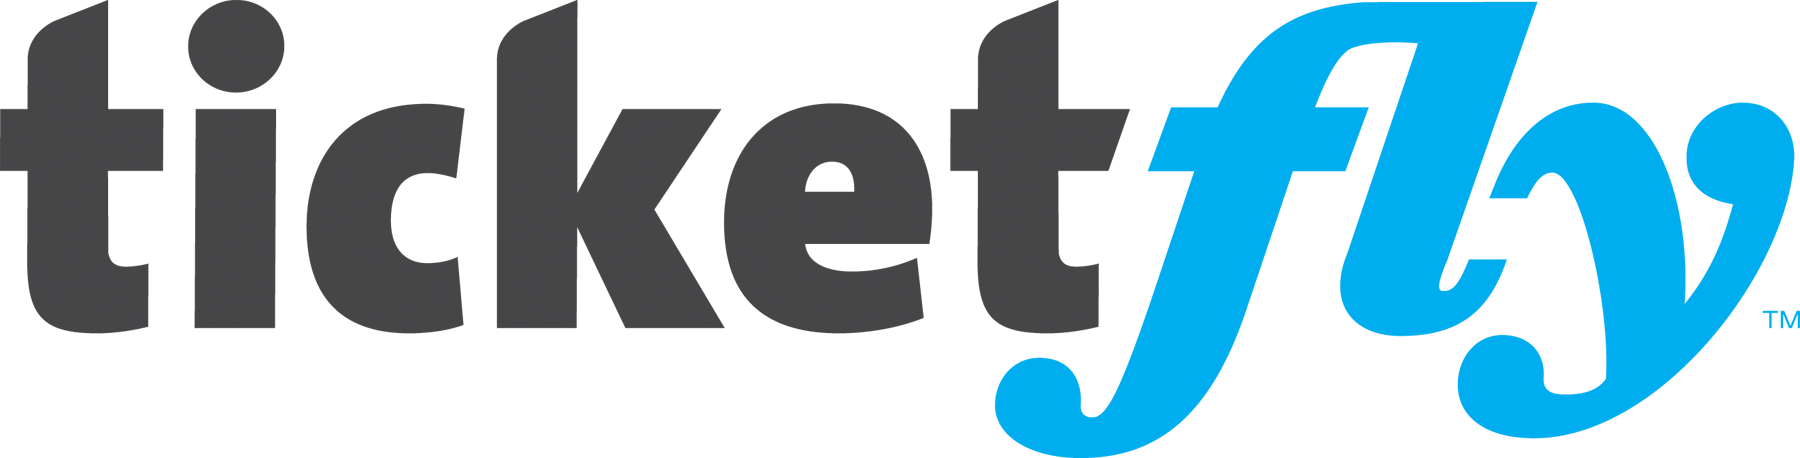 ticketfly_logo_positive.png